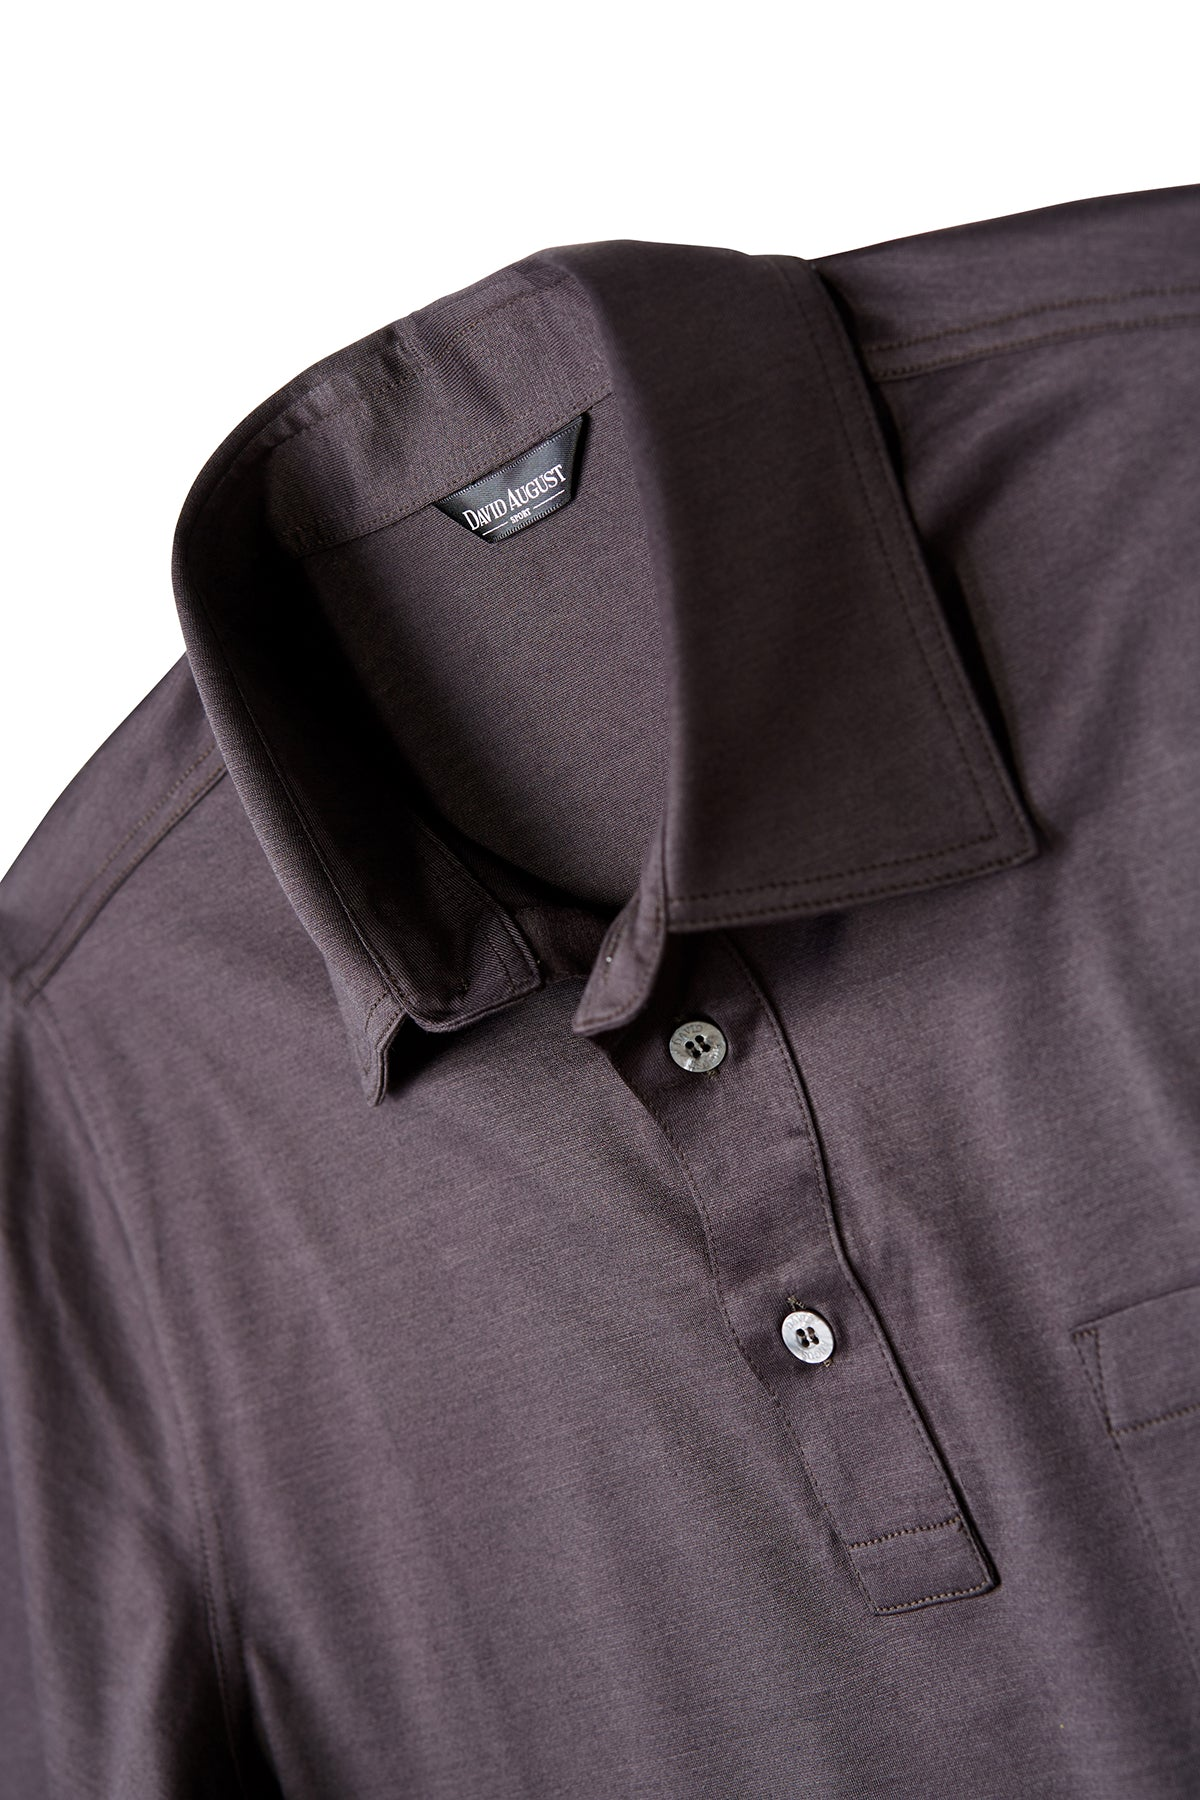 David August Brown Polo